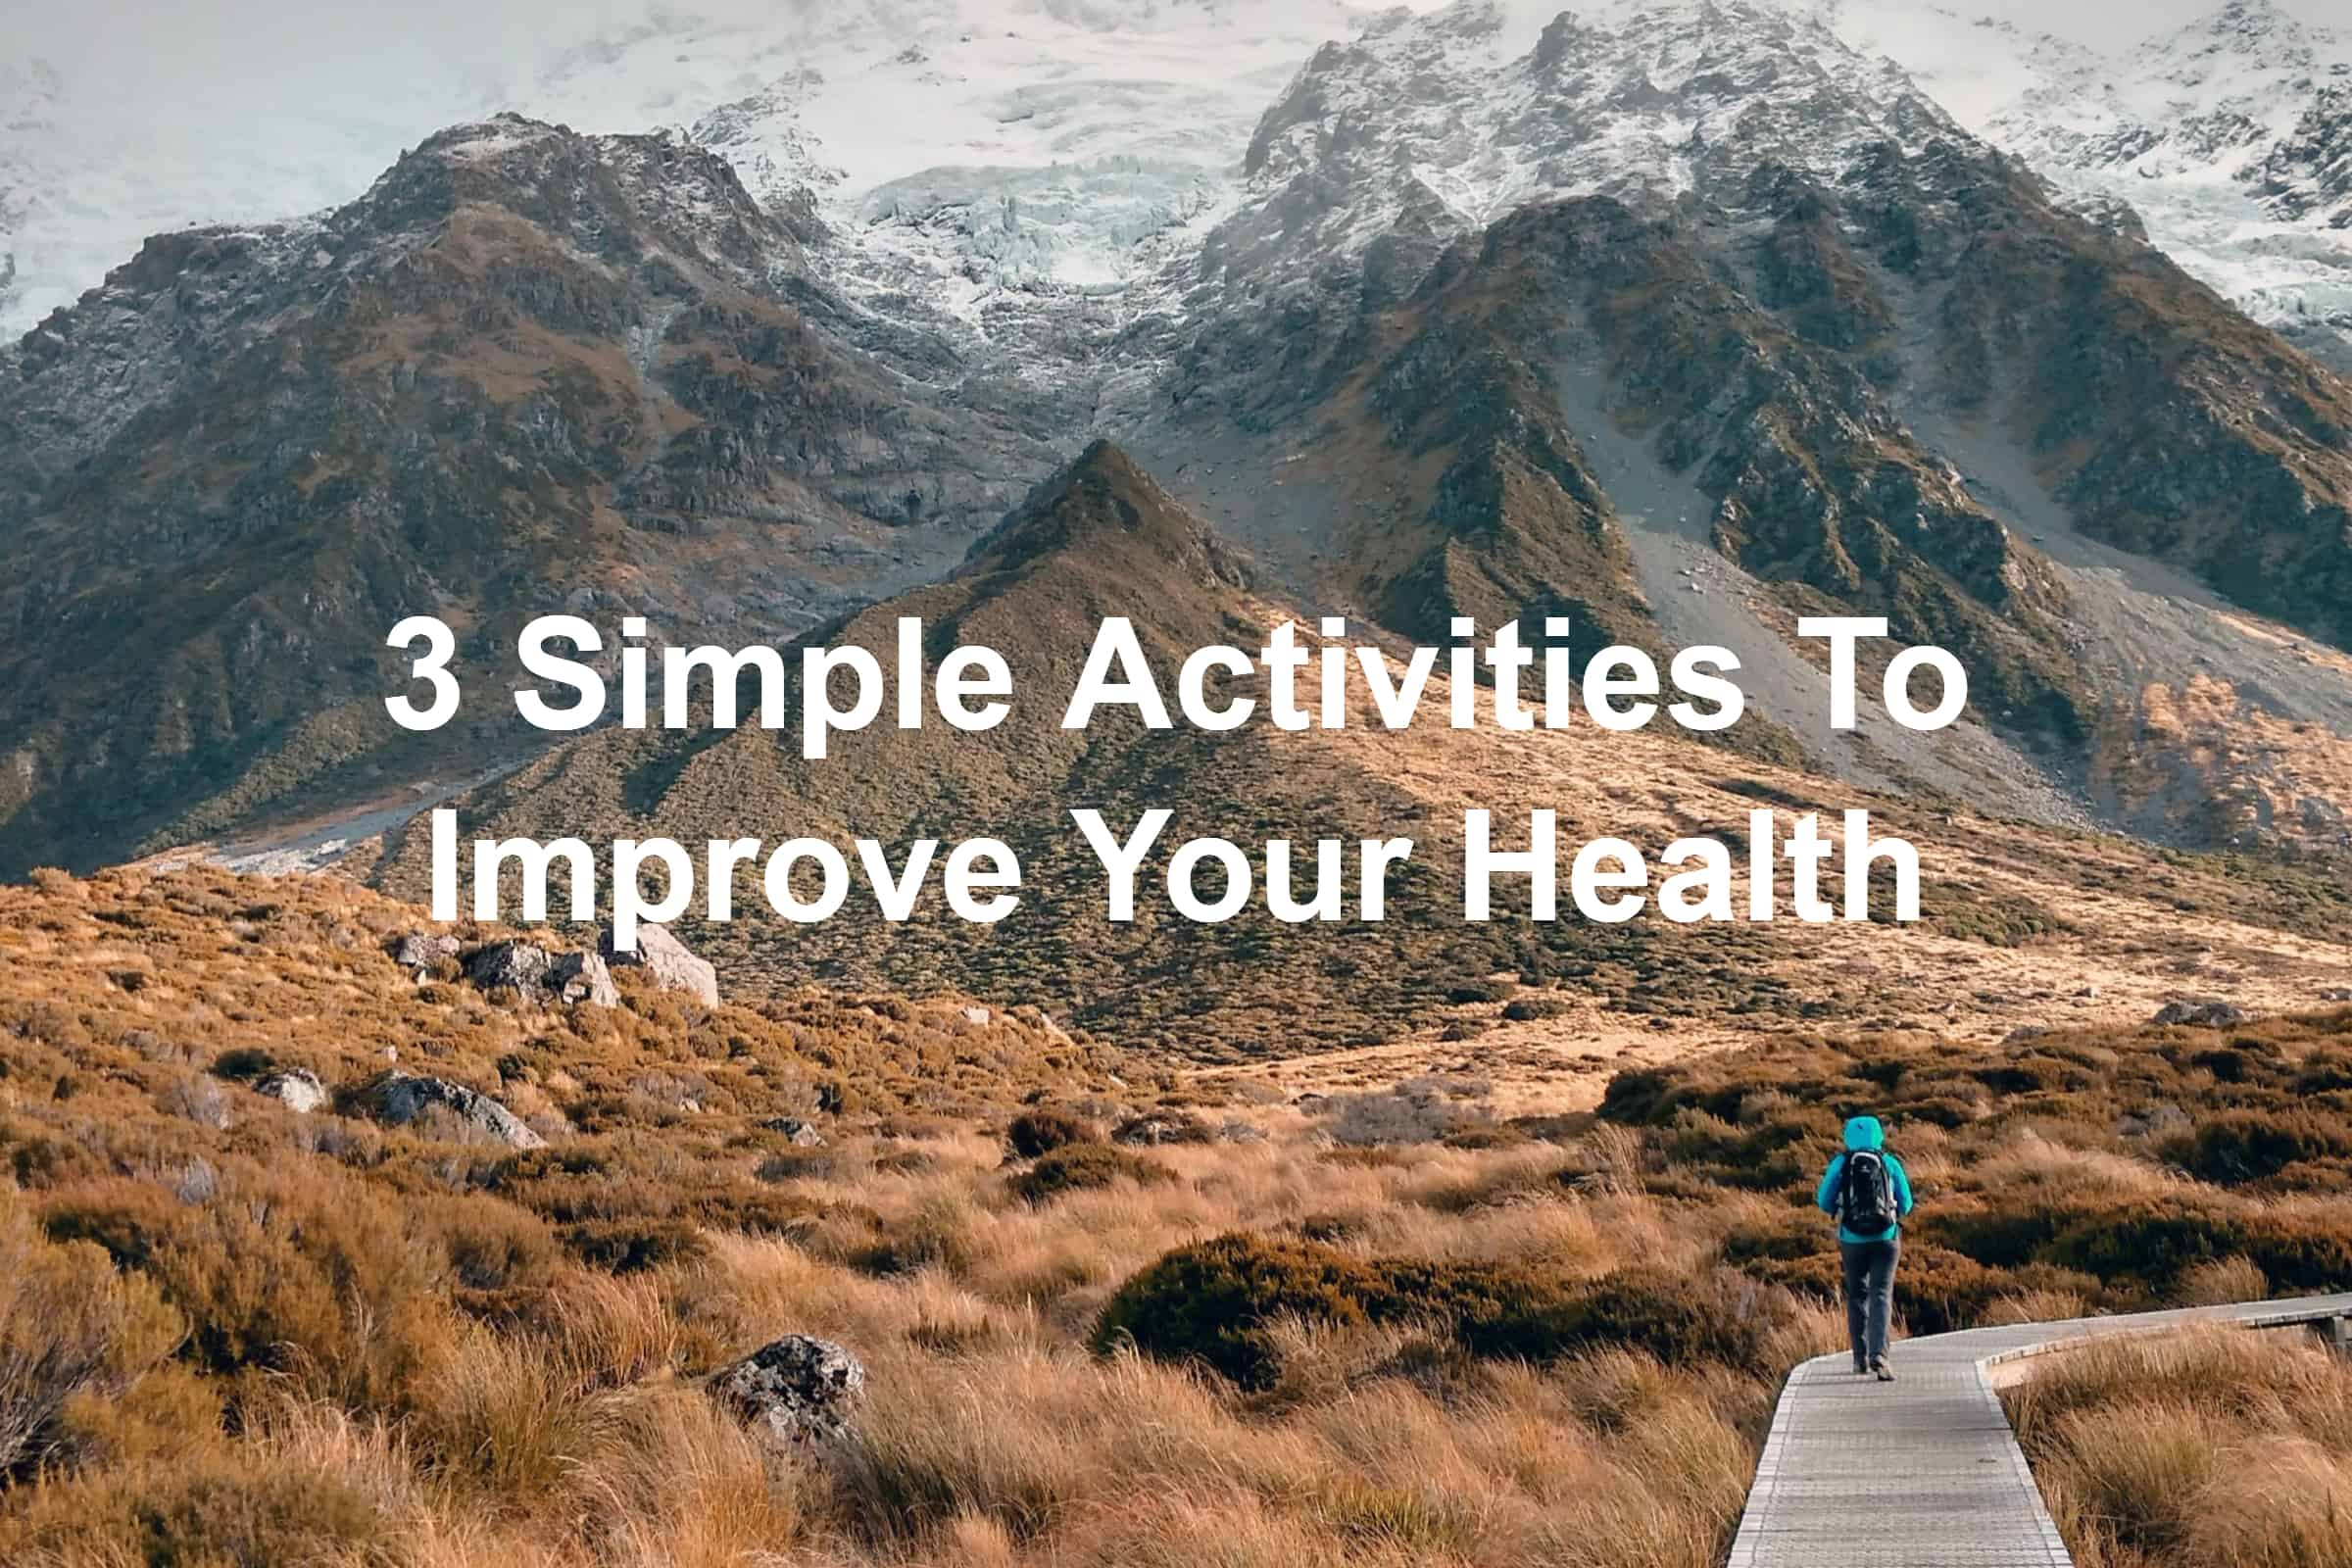 Man walking trails and getting healthy